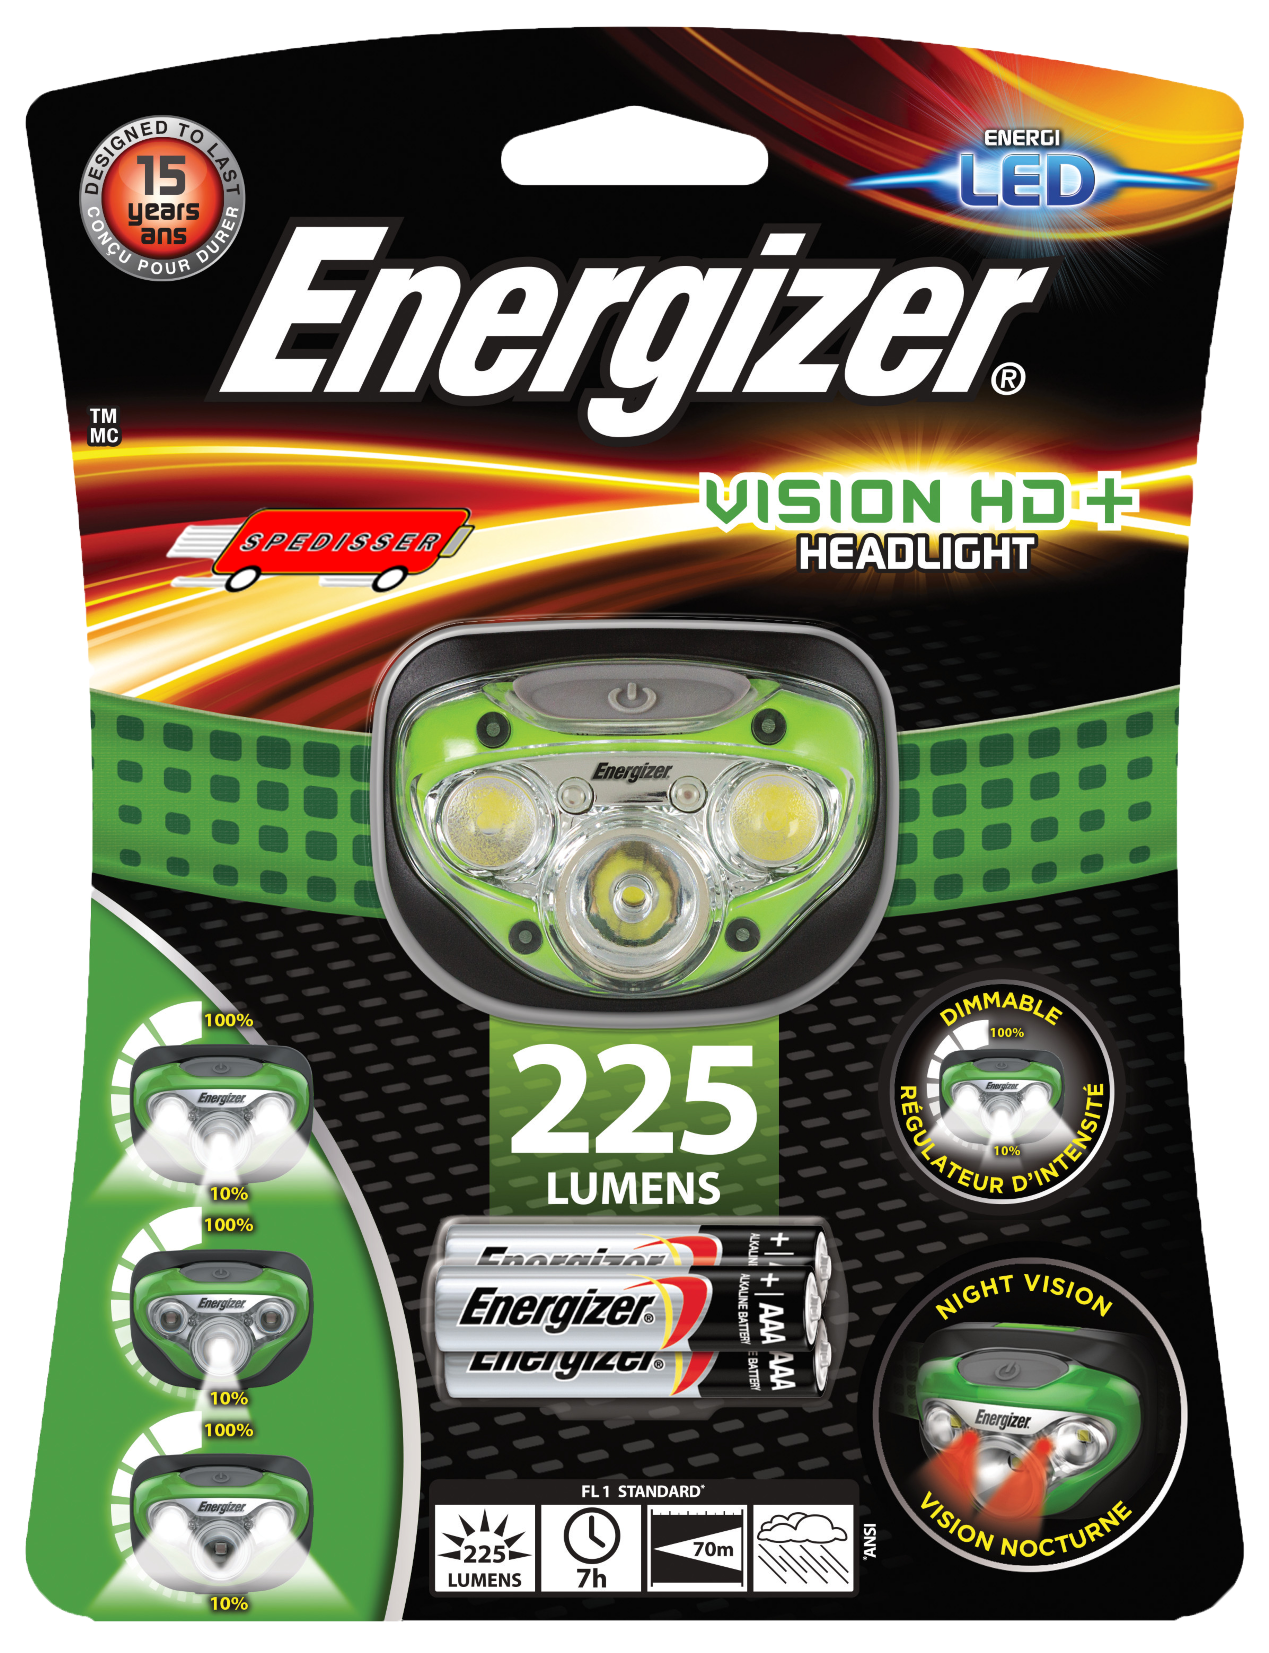 Lampe frontale Energizer 7 led + 3 piles LR03 incluses